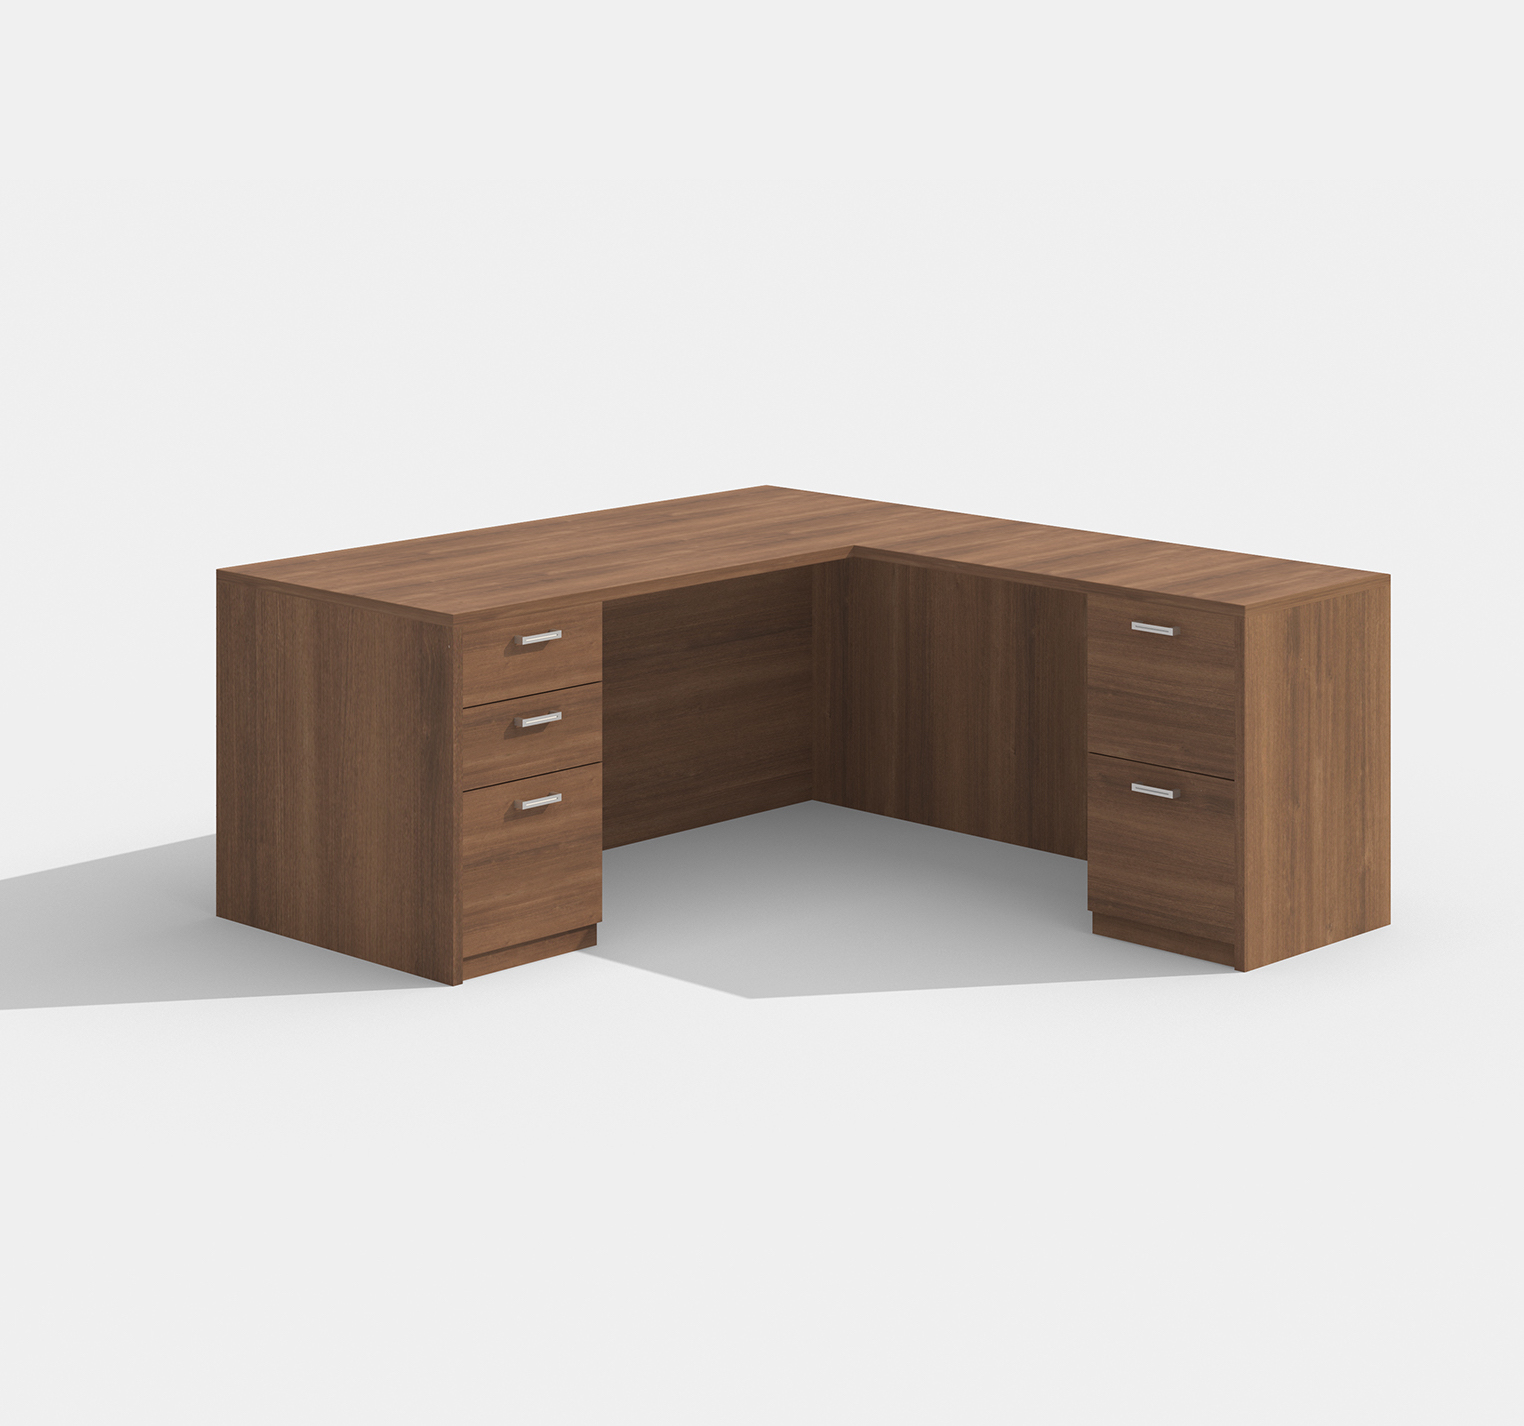 cherryman amber l-desk am-314n in walnut